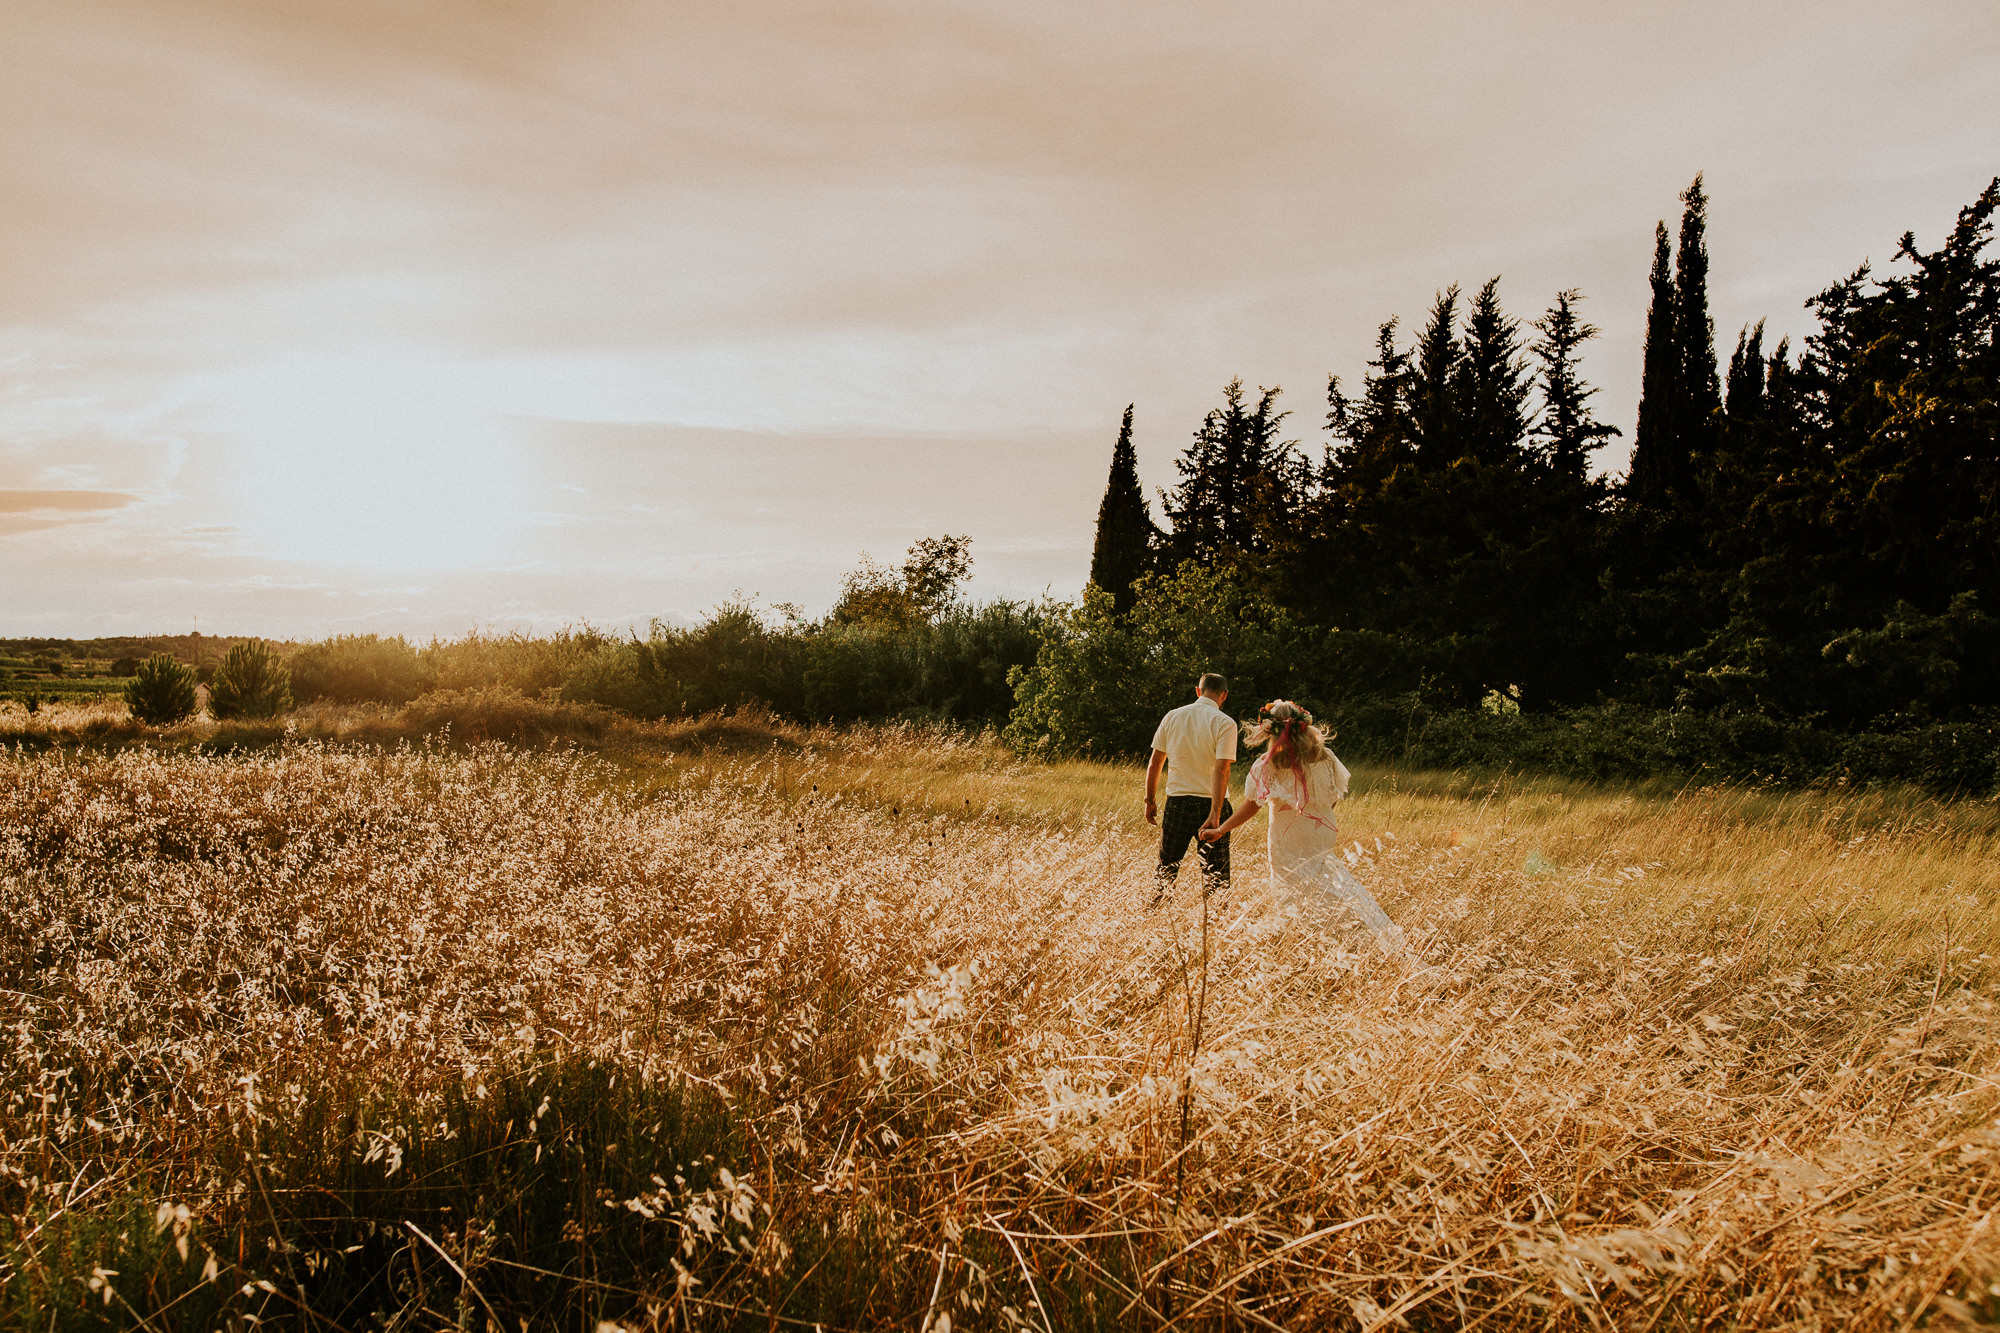 Bride and groom walking in a field on their wedding day in chateau du puits es pratx. What a beautiful destination wedding in France.